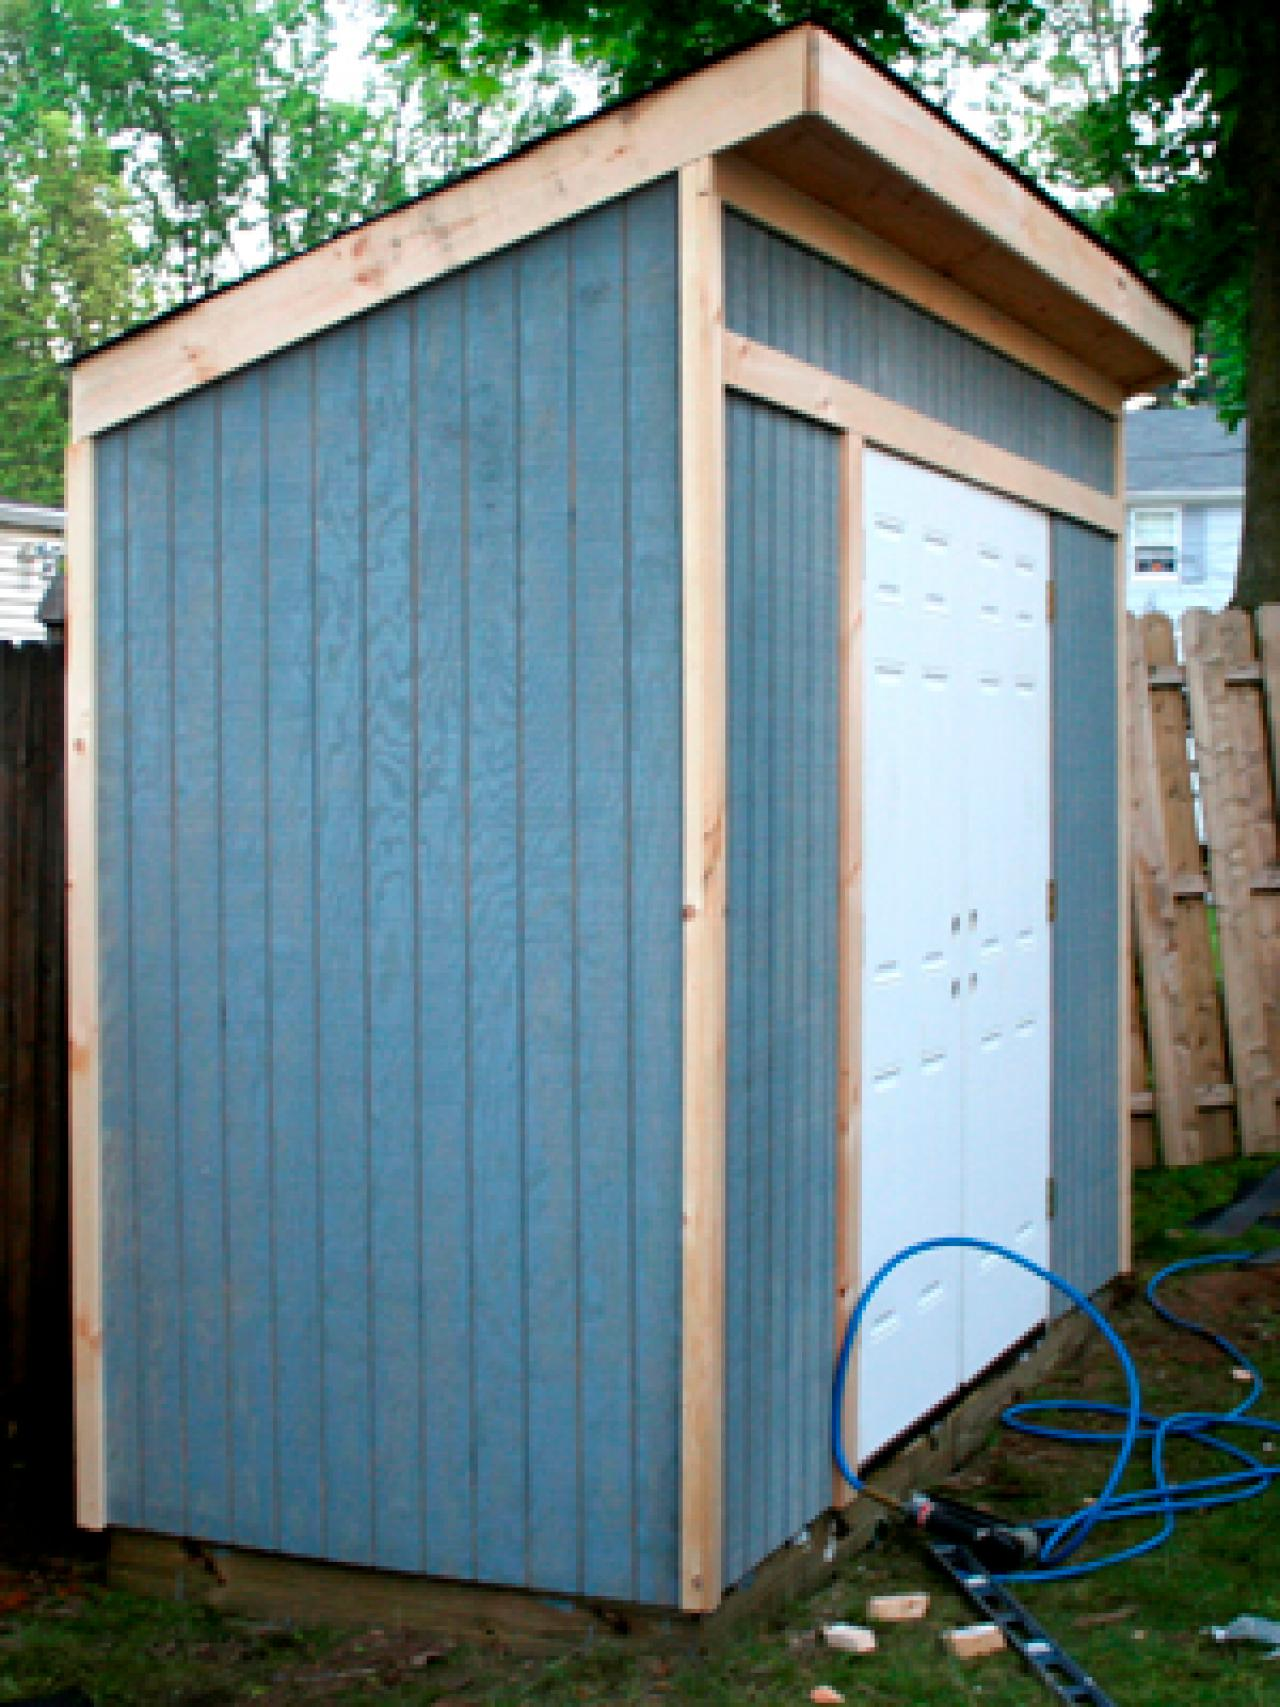 How to build a storage shed for garden tools hgtv for Building a storage shed